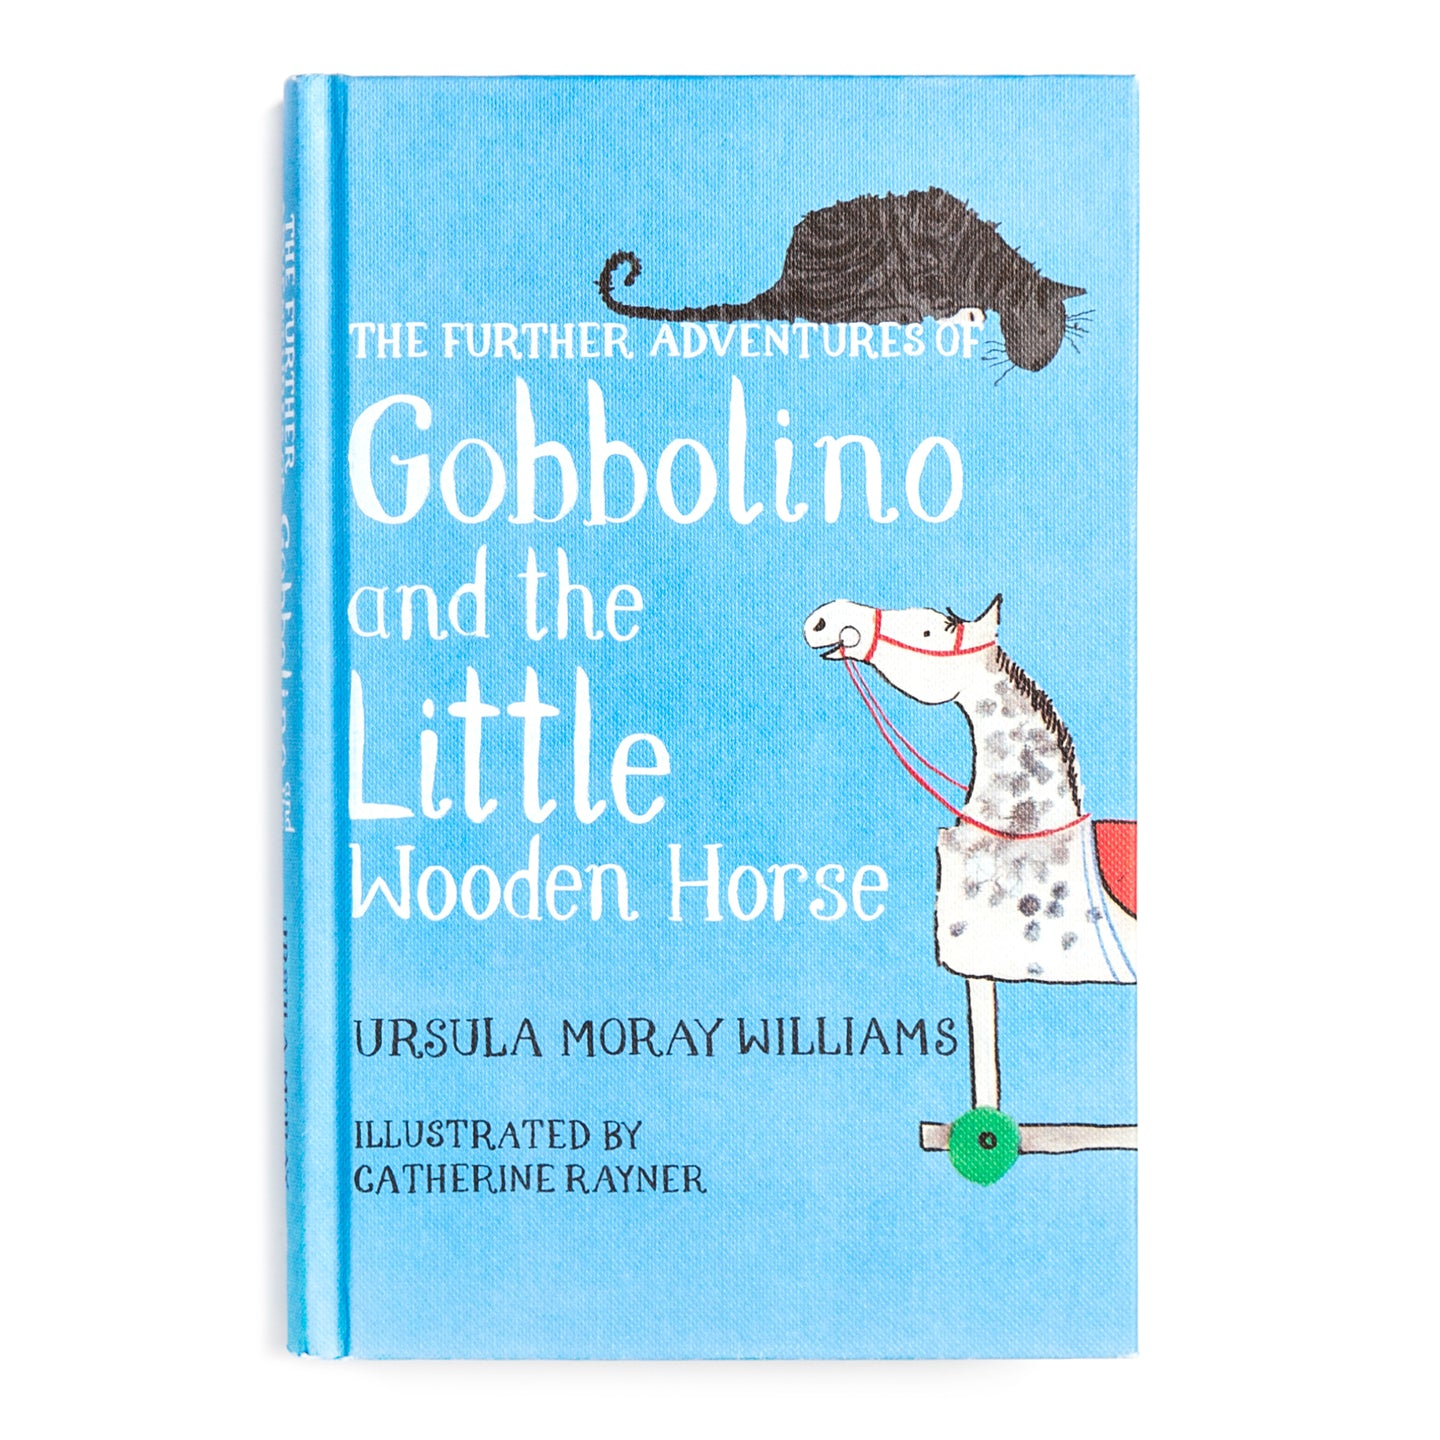 Gobbolino and the little wooden horse